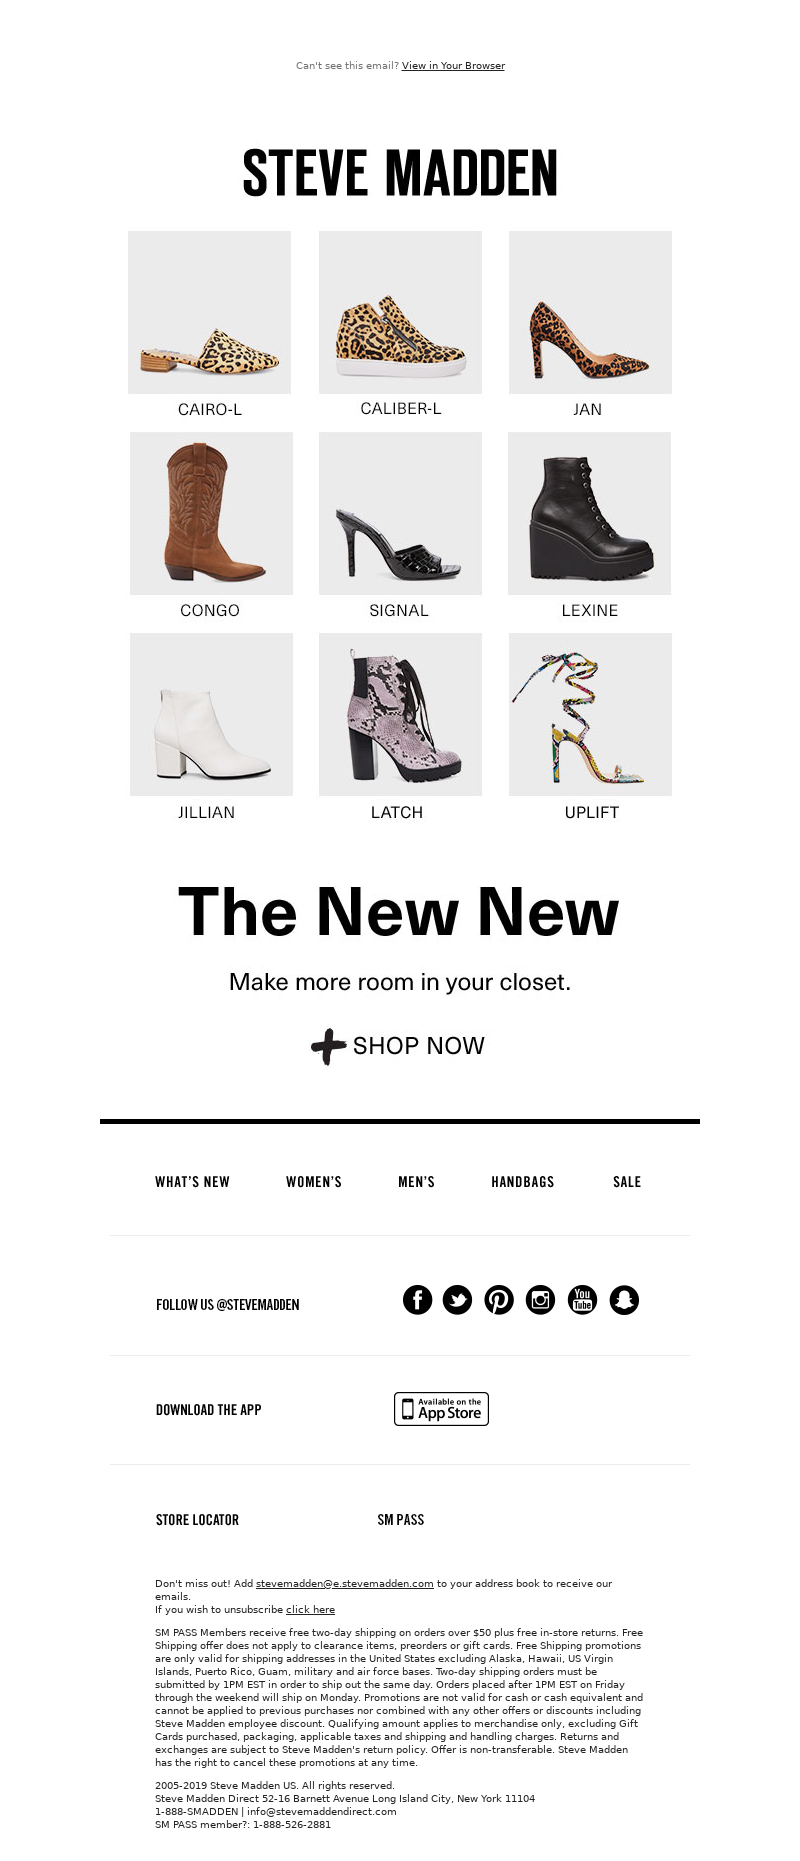 Email example and strategy from Steve Madden